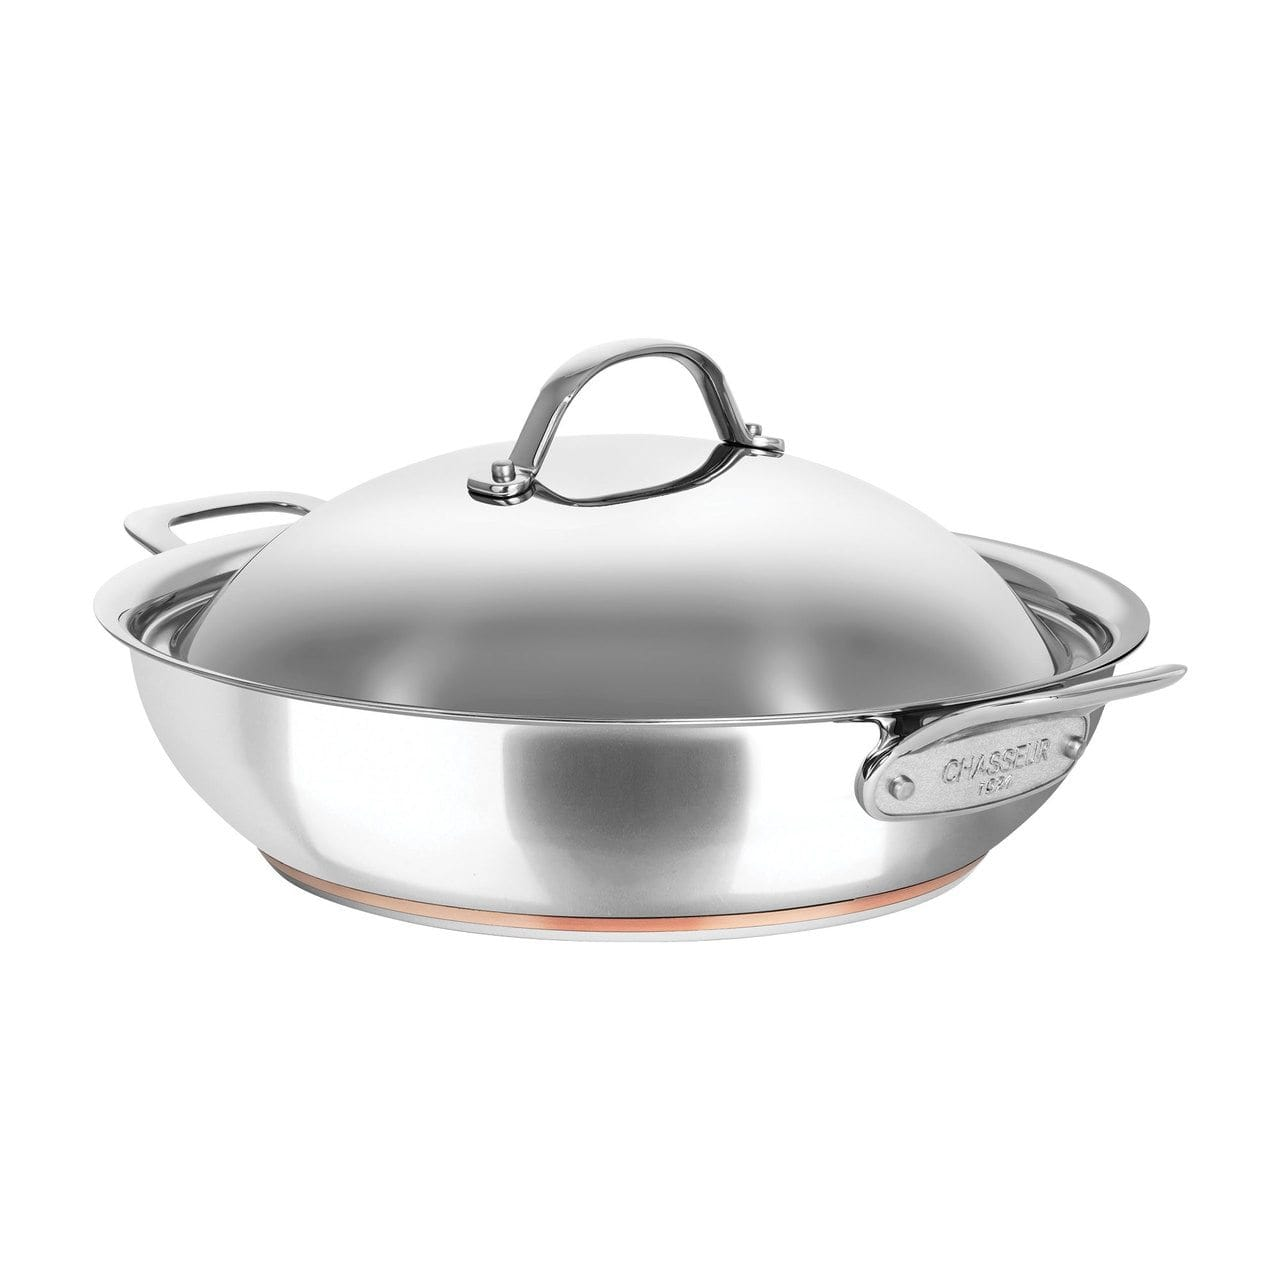 Chasseur Le Cuivre 32cm/5.6L Chef Pan with 2 Side Handles